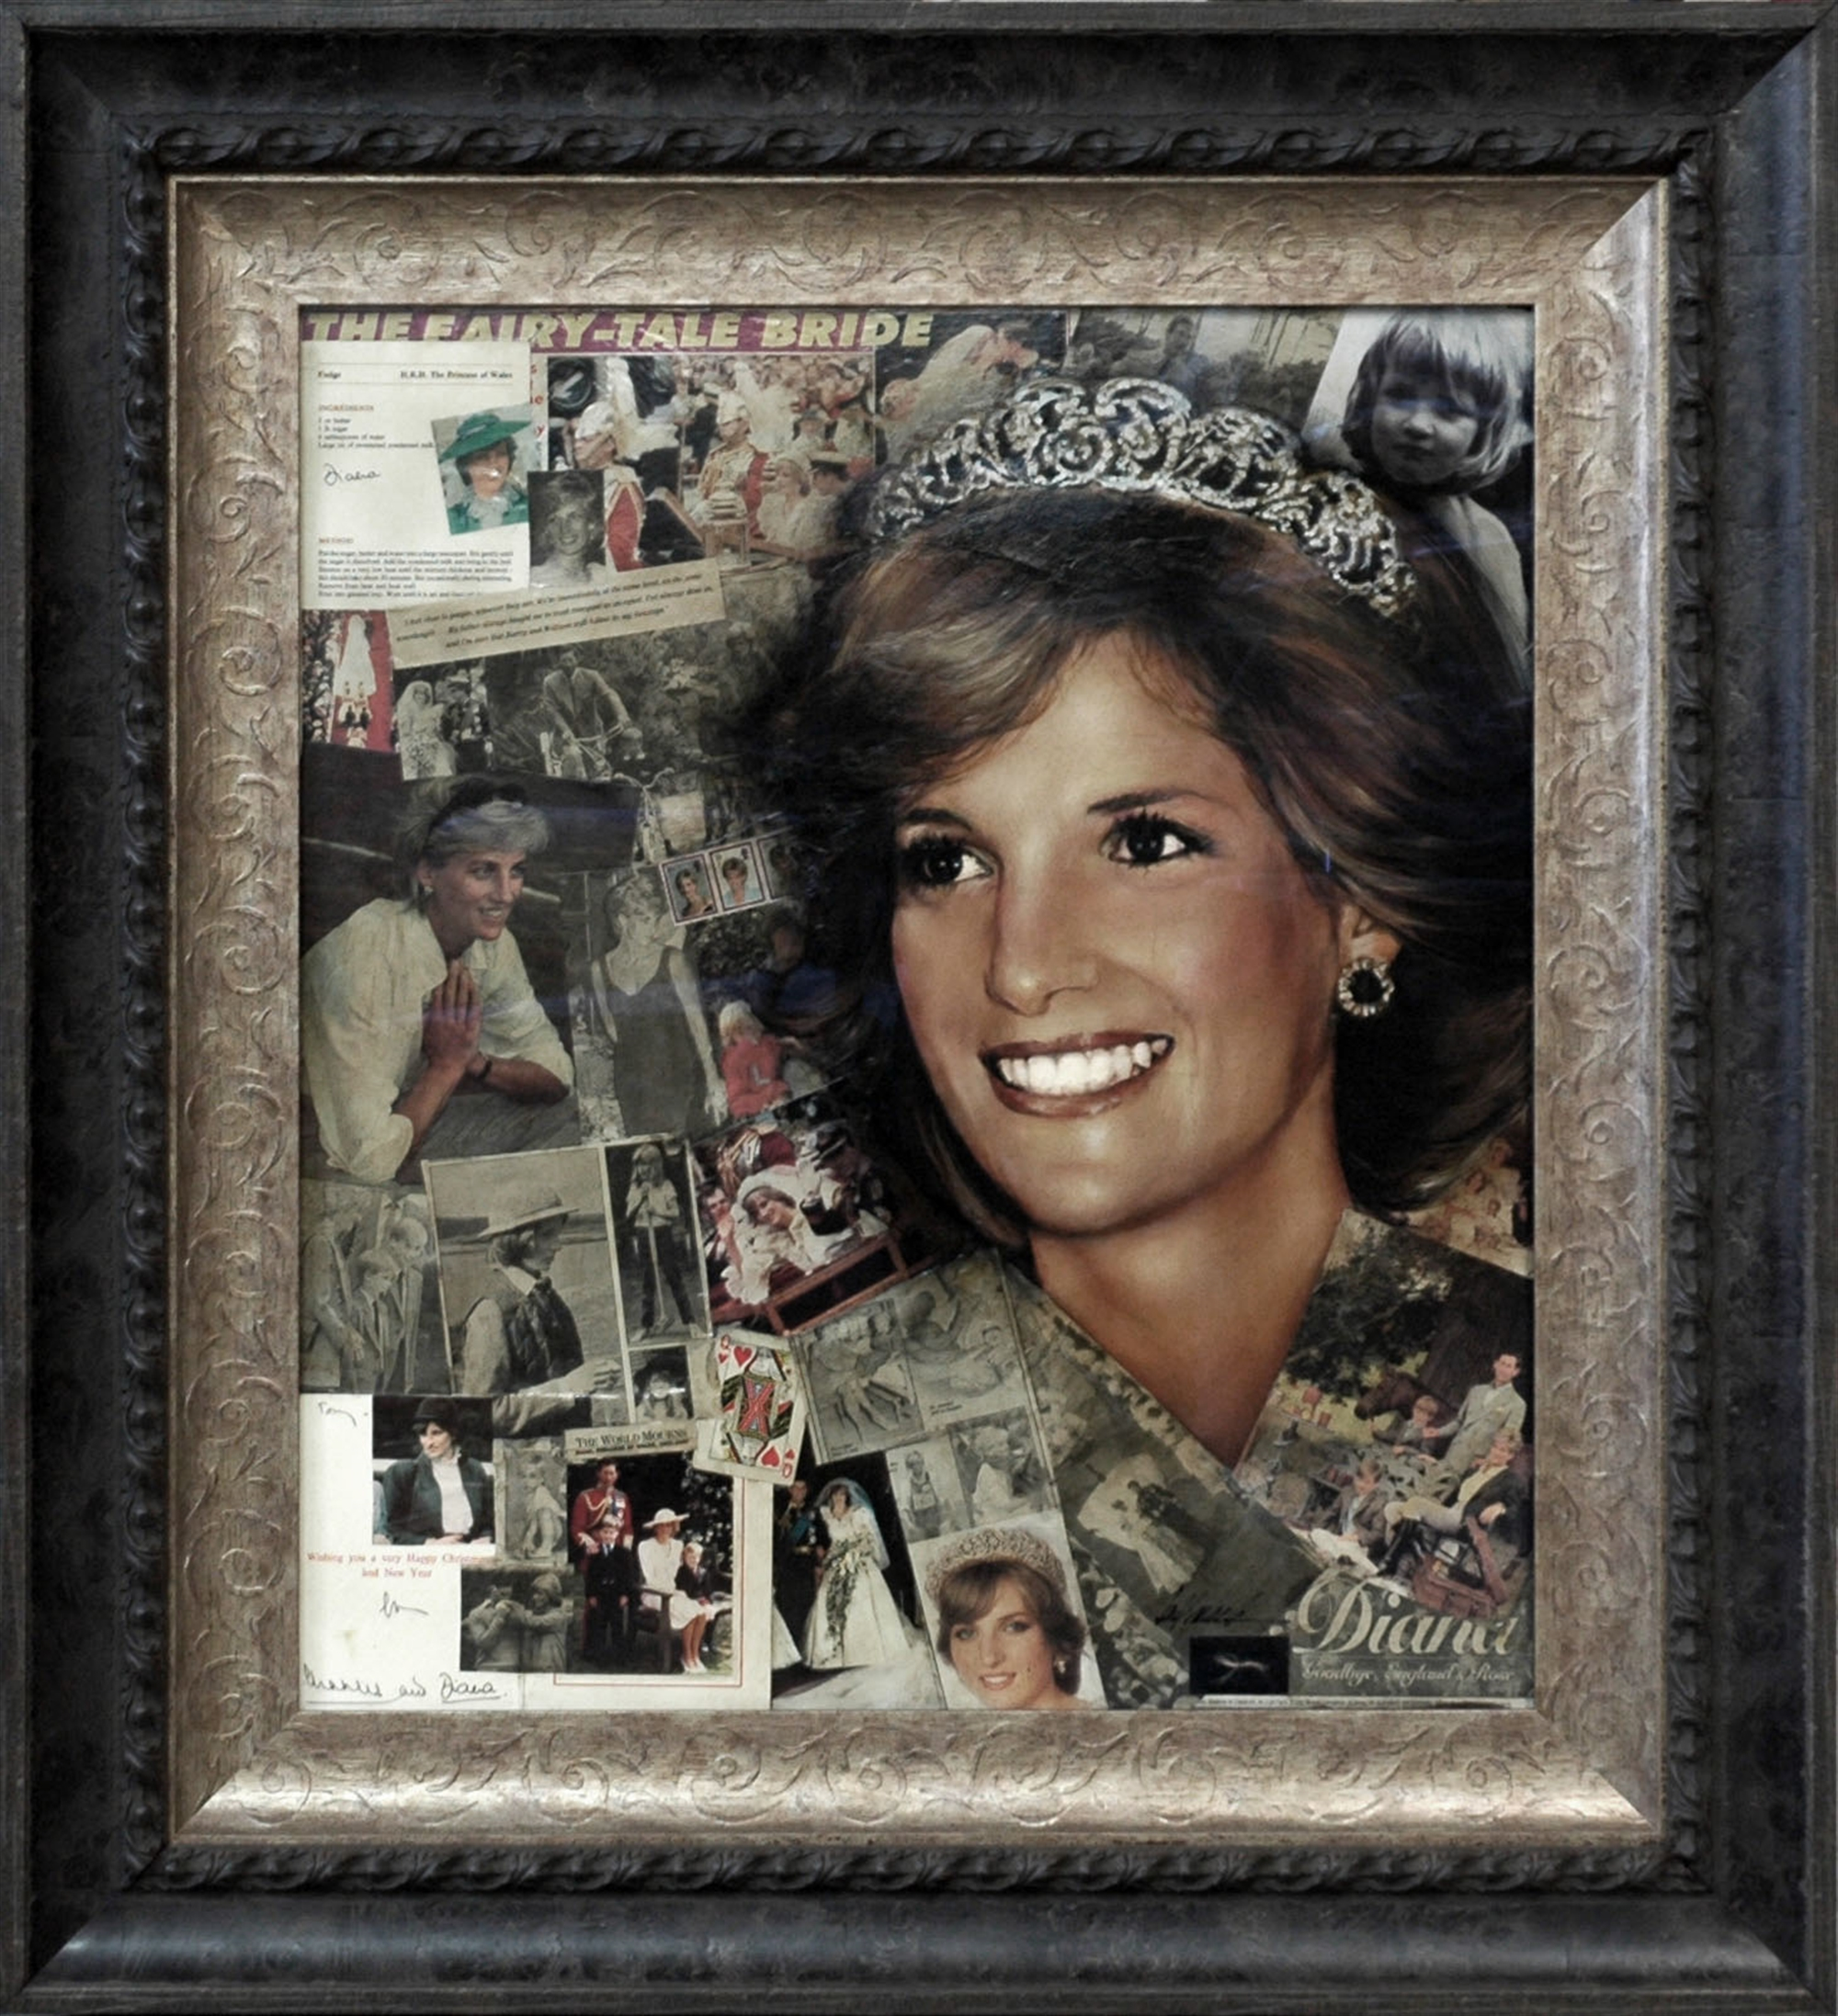 Homage to Diana by Bill Mack